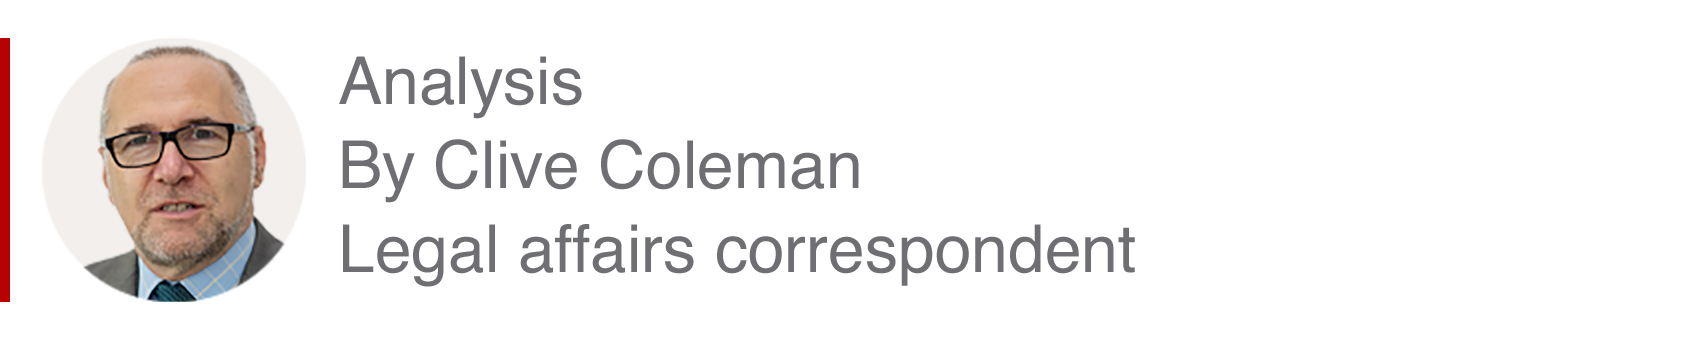 Analysis box by Clive Coleman, legal affairs correspondent